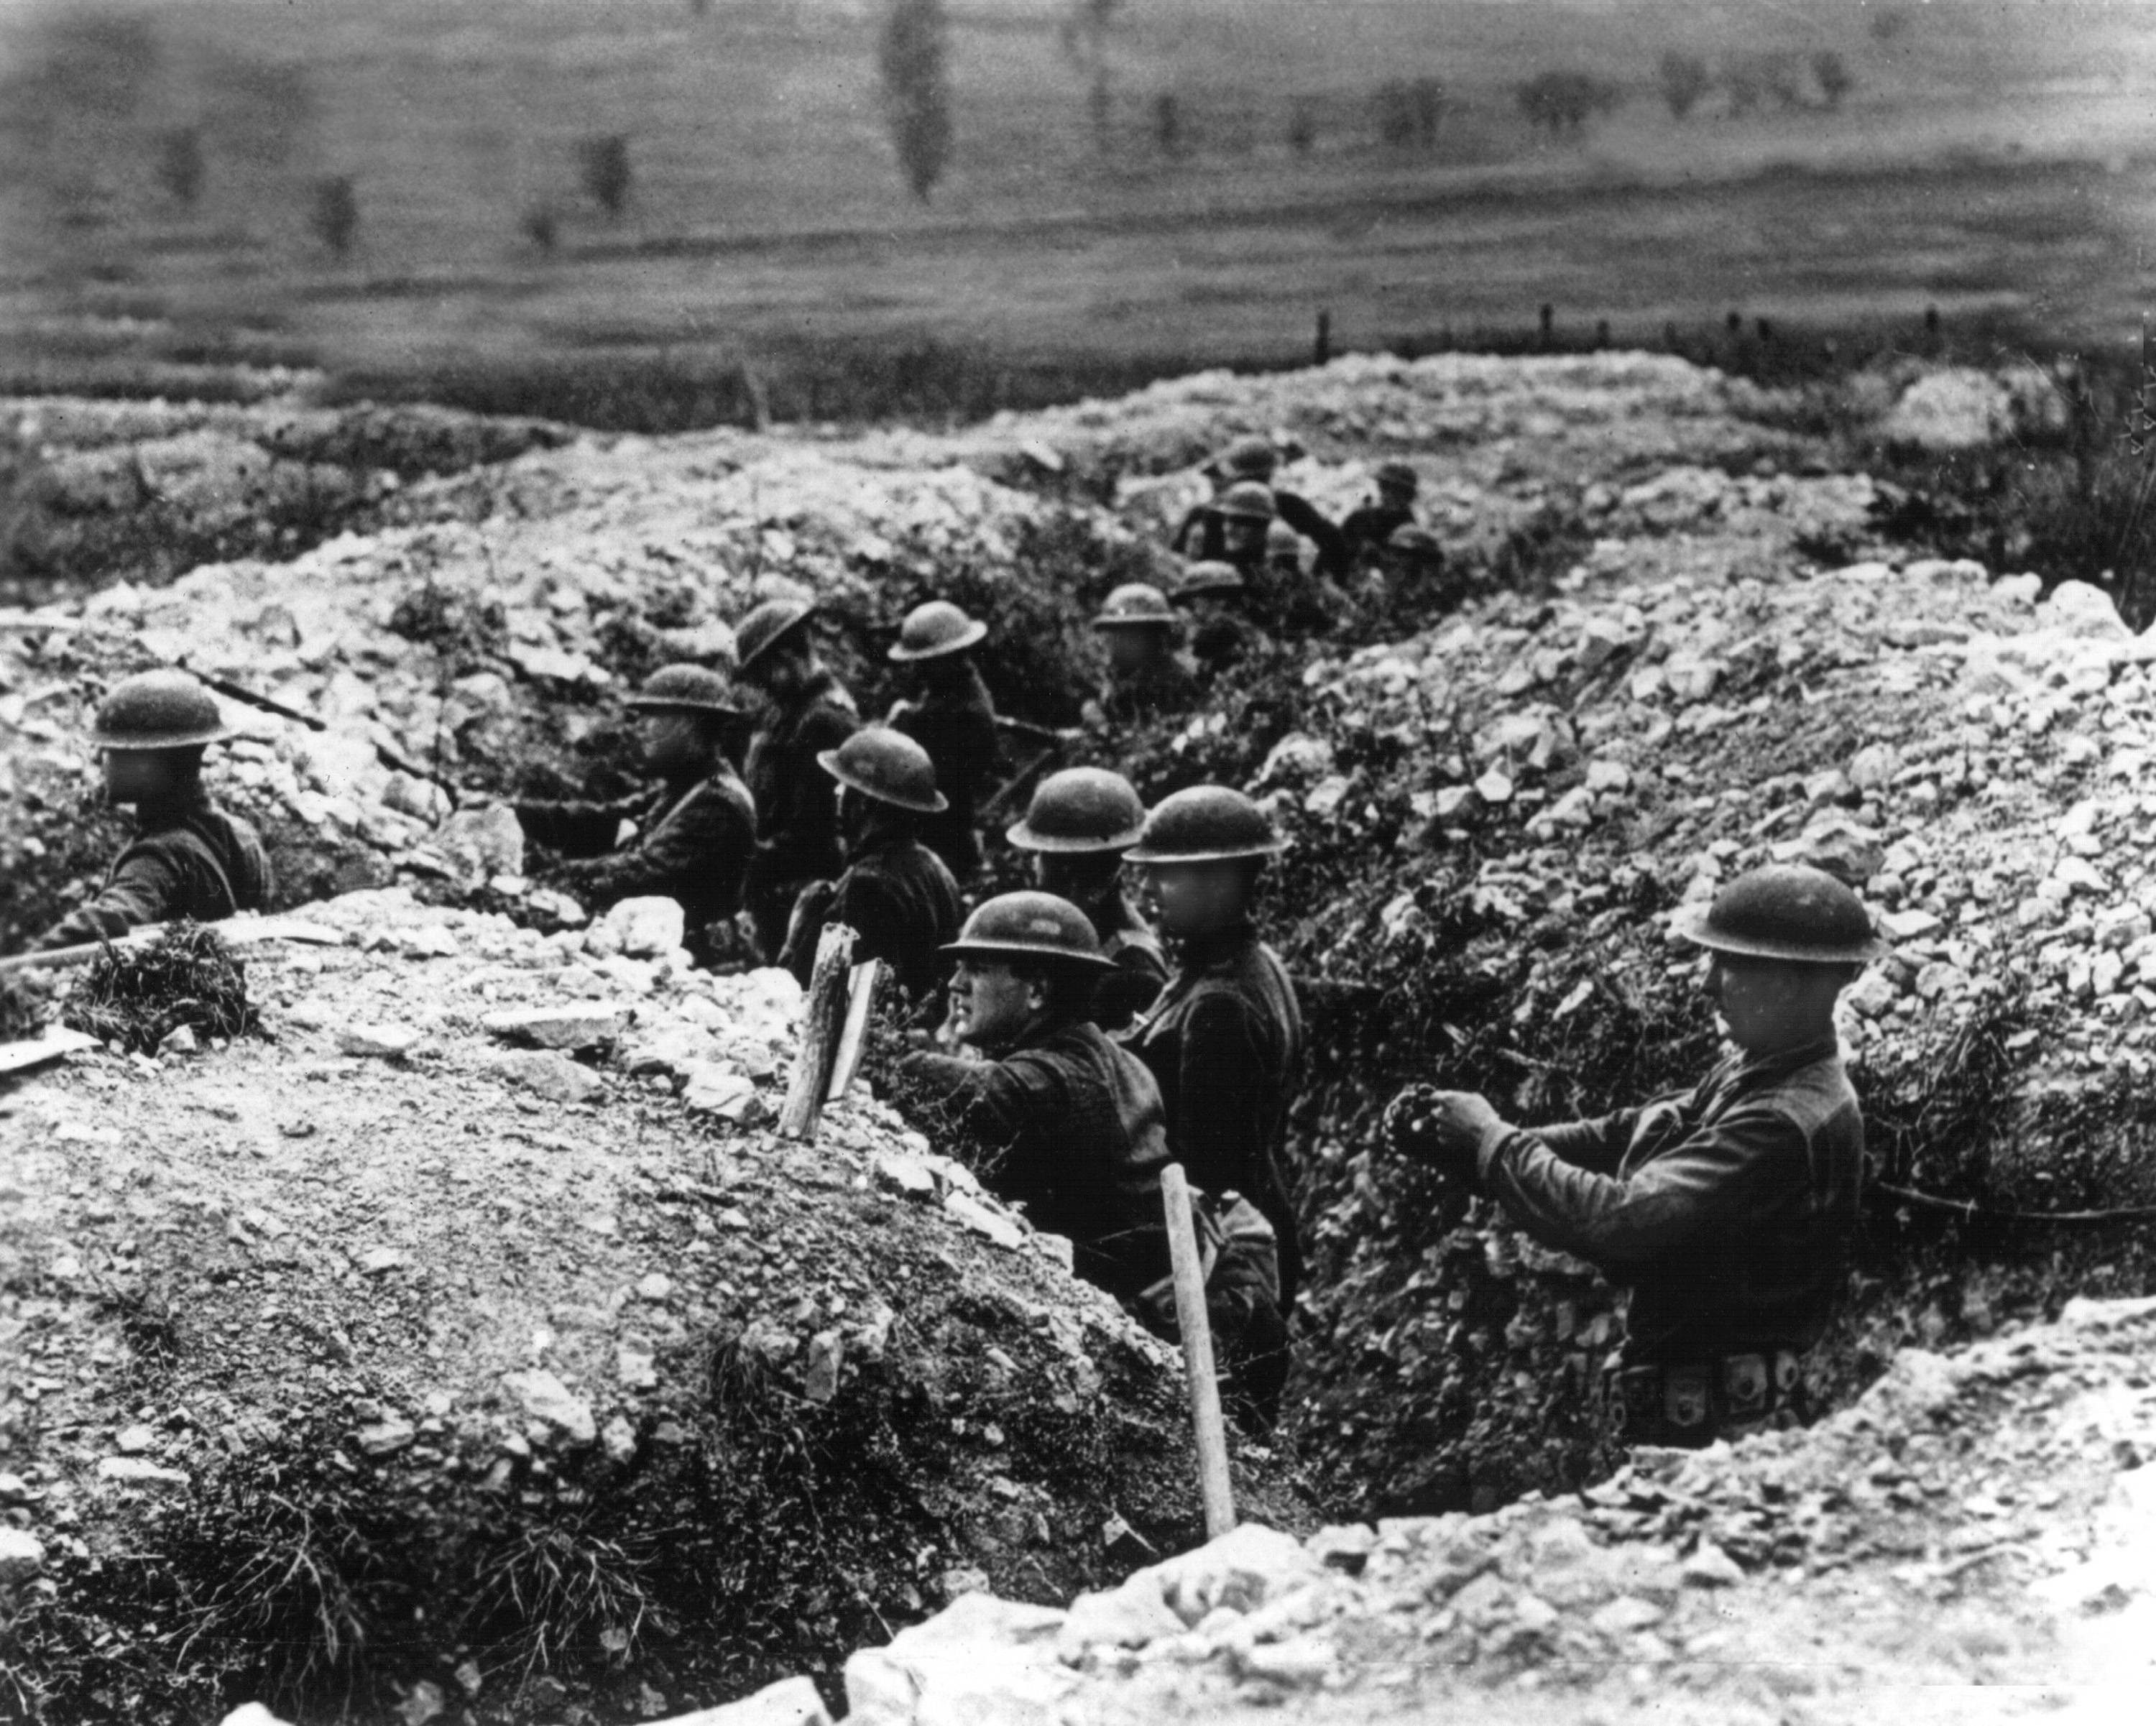 88 OF 100: In this undated file photo, U.S. Army troops stand in the trenches in France during World War I.